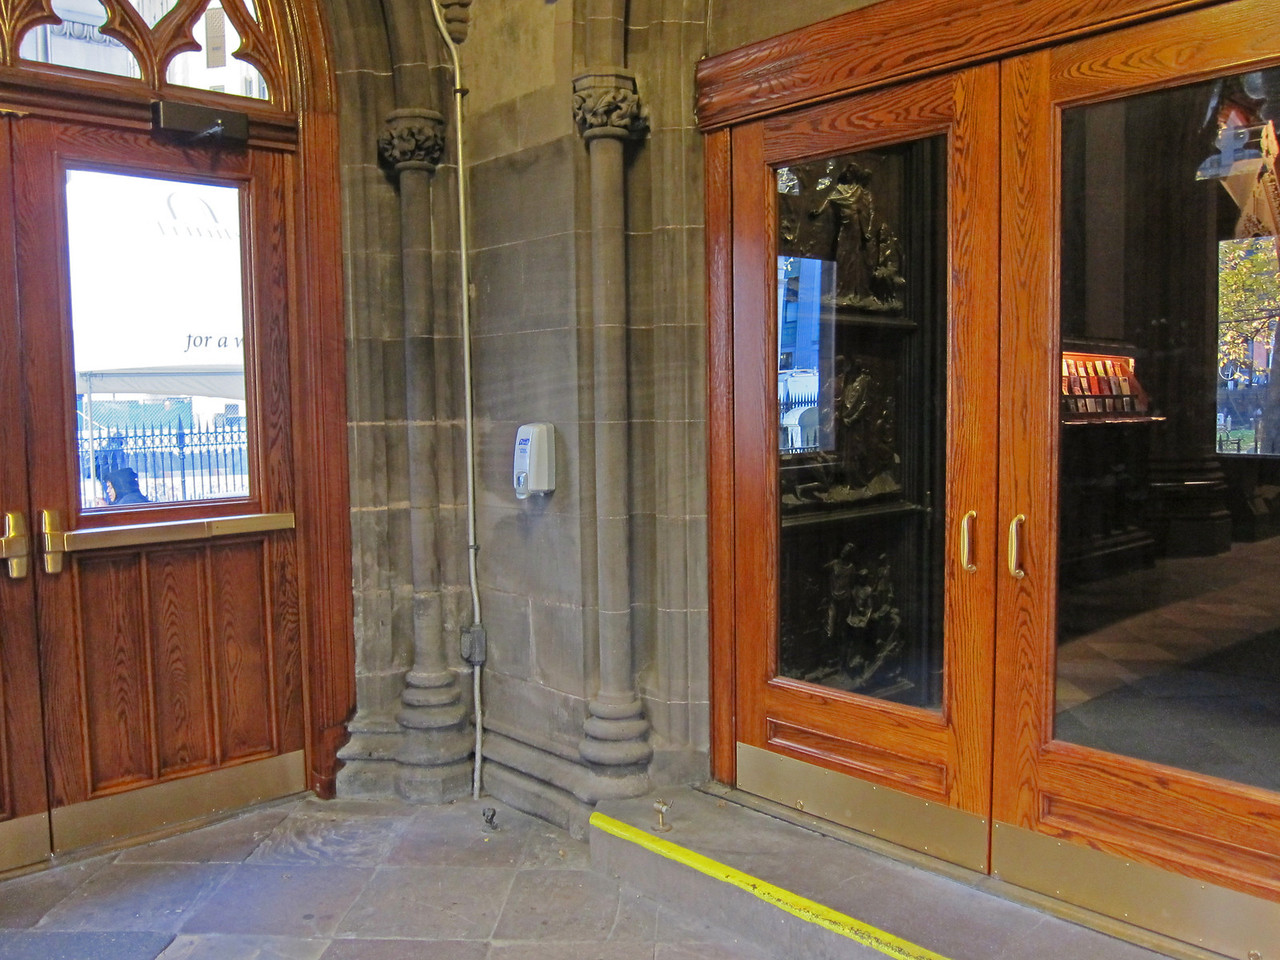 xTrinity Wall Street Church_2013-11-20_4660_north entryway vestibule, Broadway on left, church entrance on right